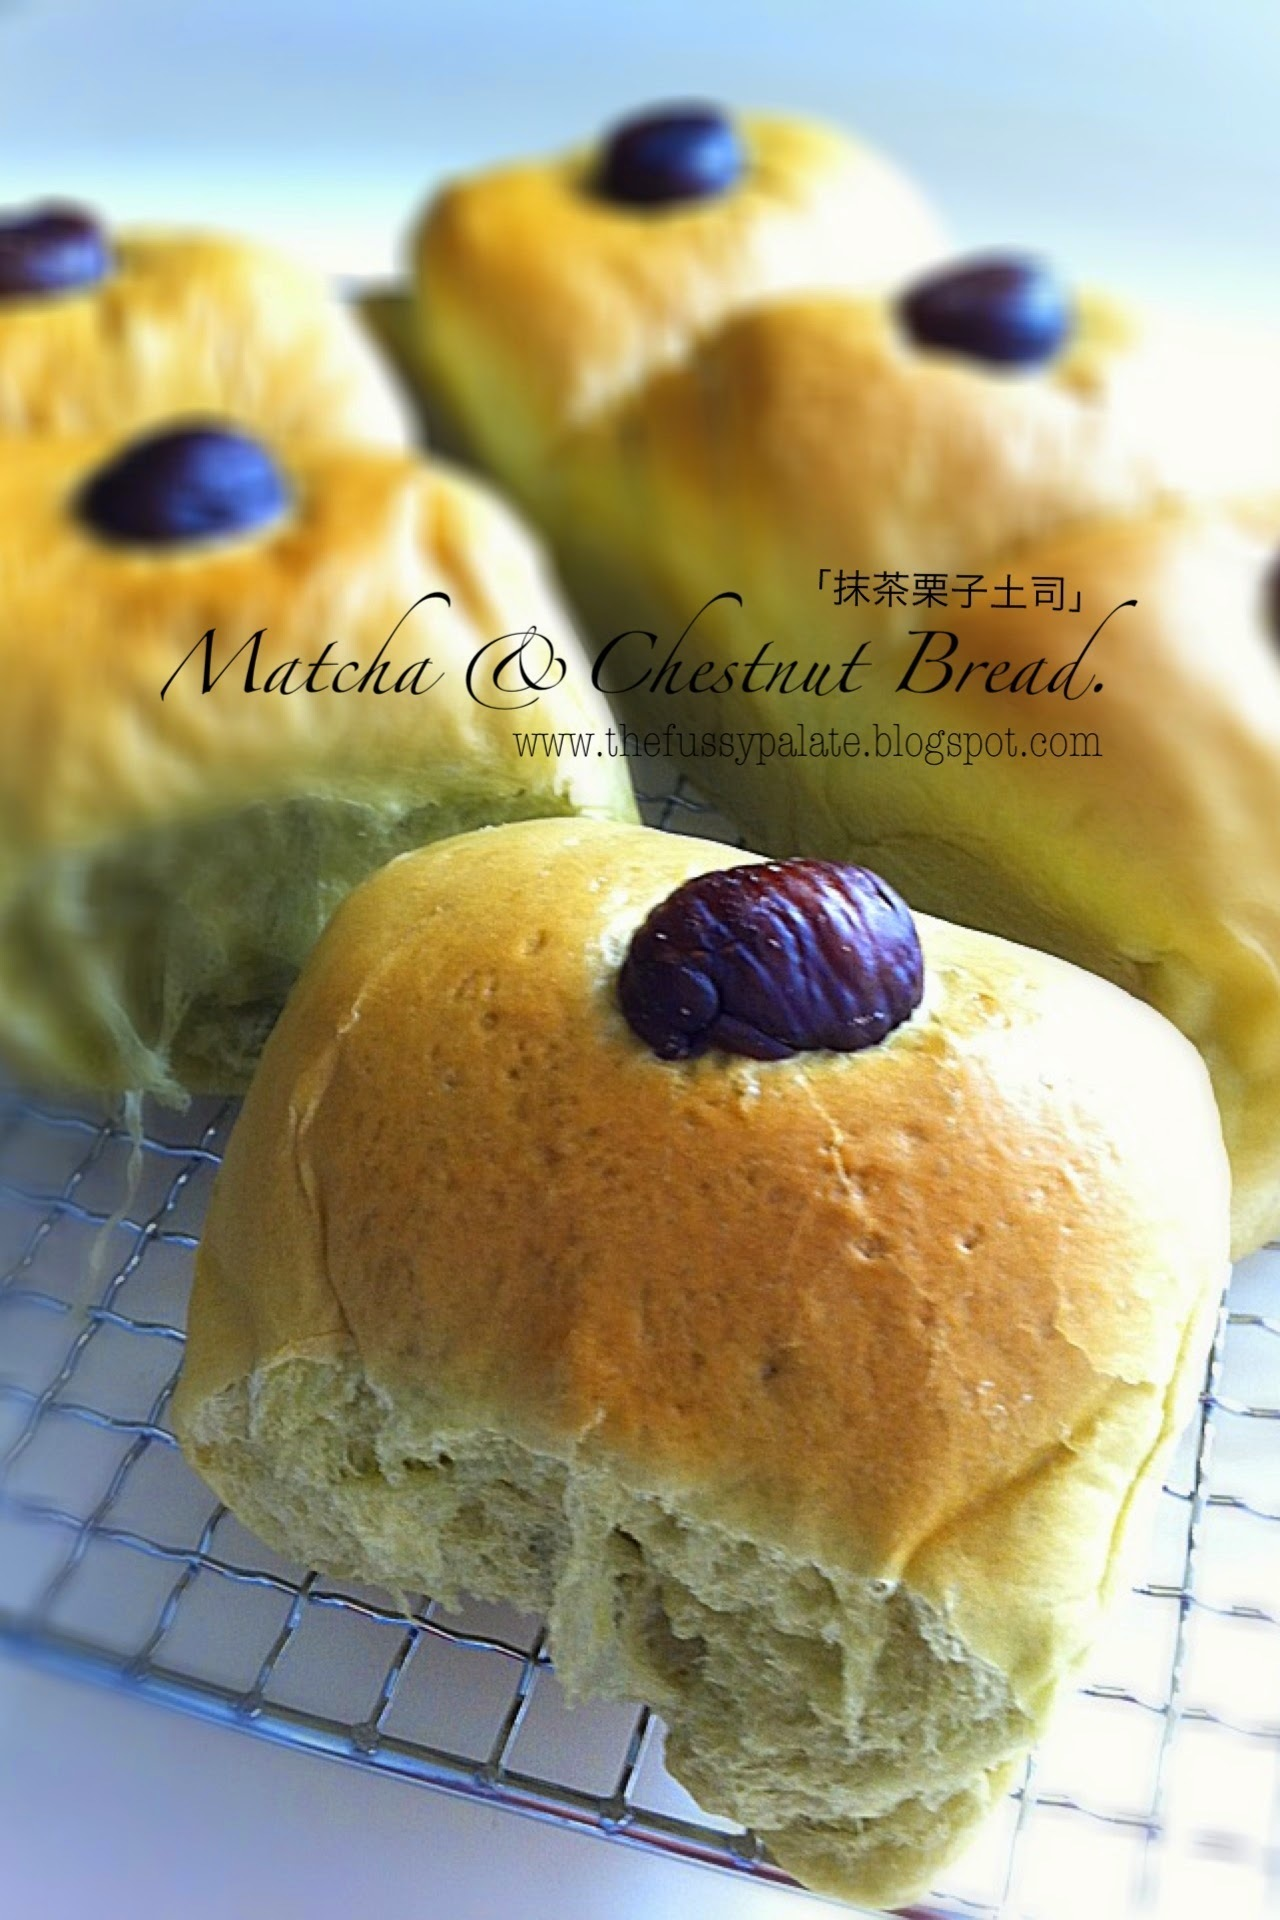 Matcha & Chestnut Bread